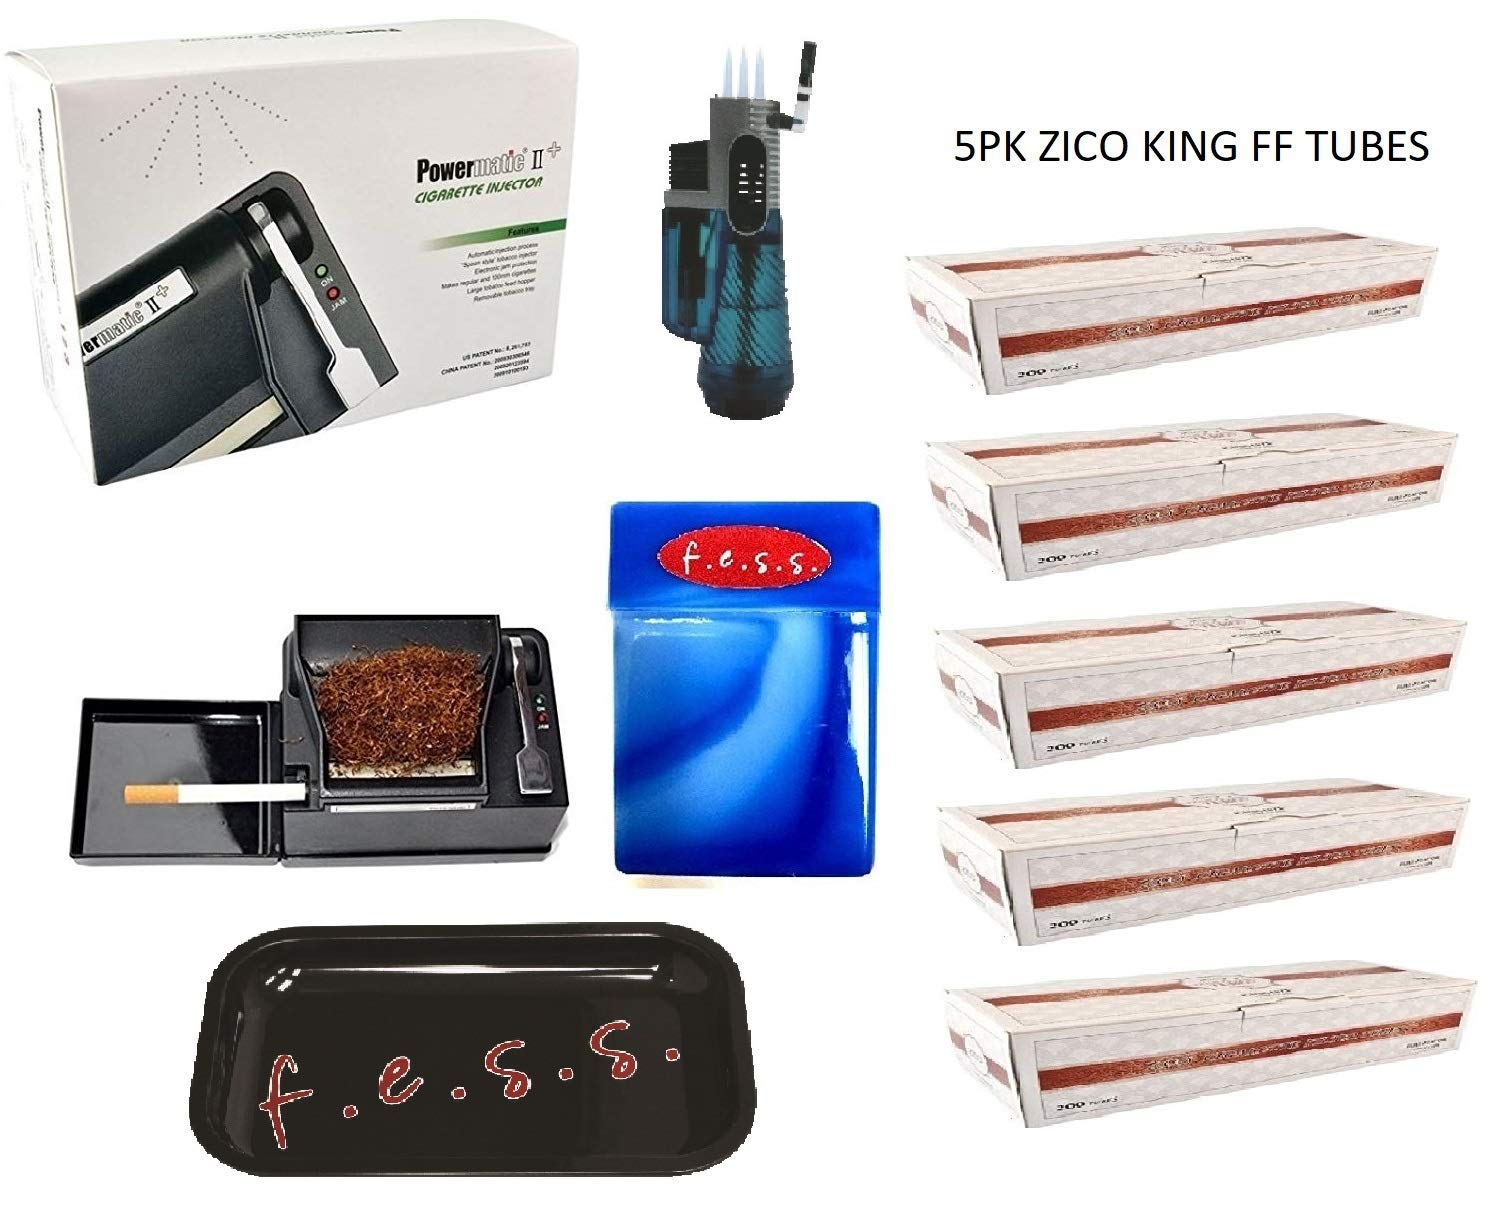 Powermatic 2 PLUS Electric Cigarette Injector Machine+ Two FREE Tubes,Cig Case & Two liters